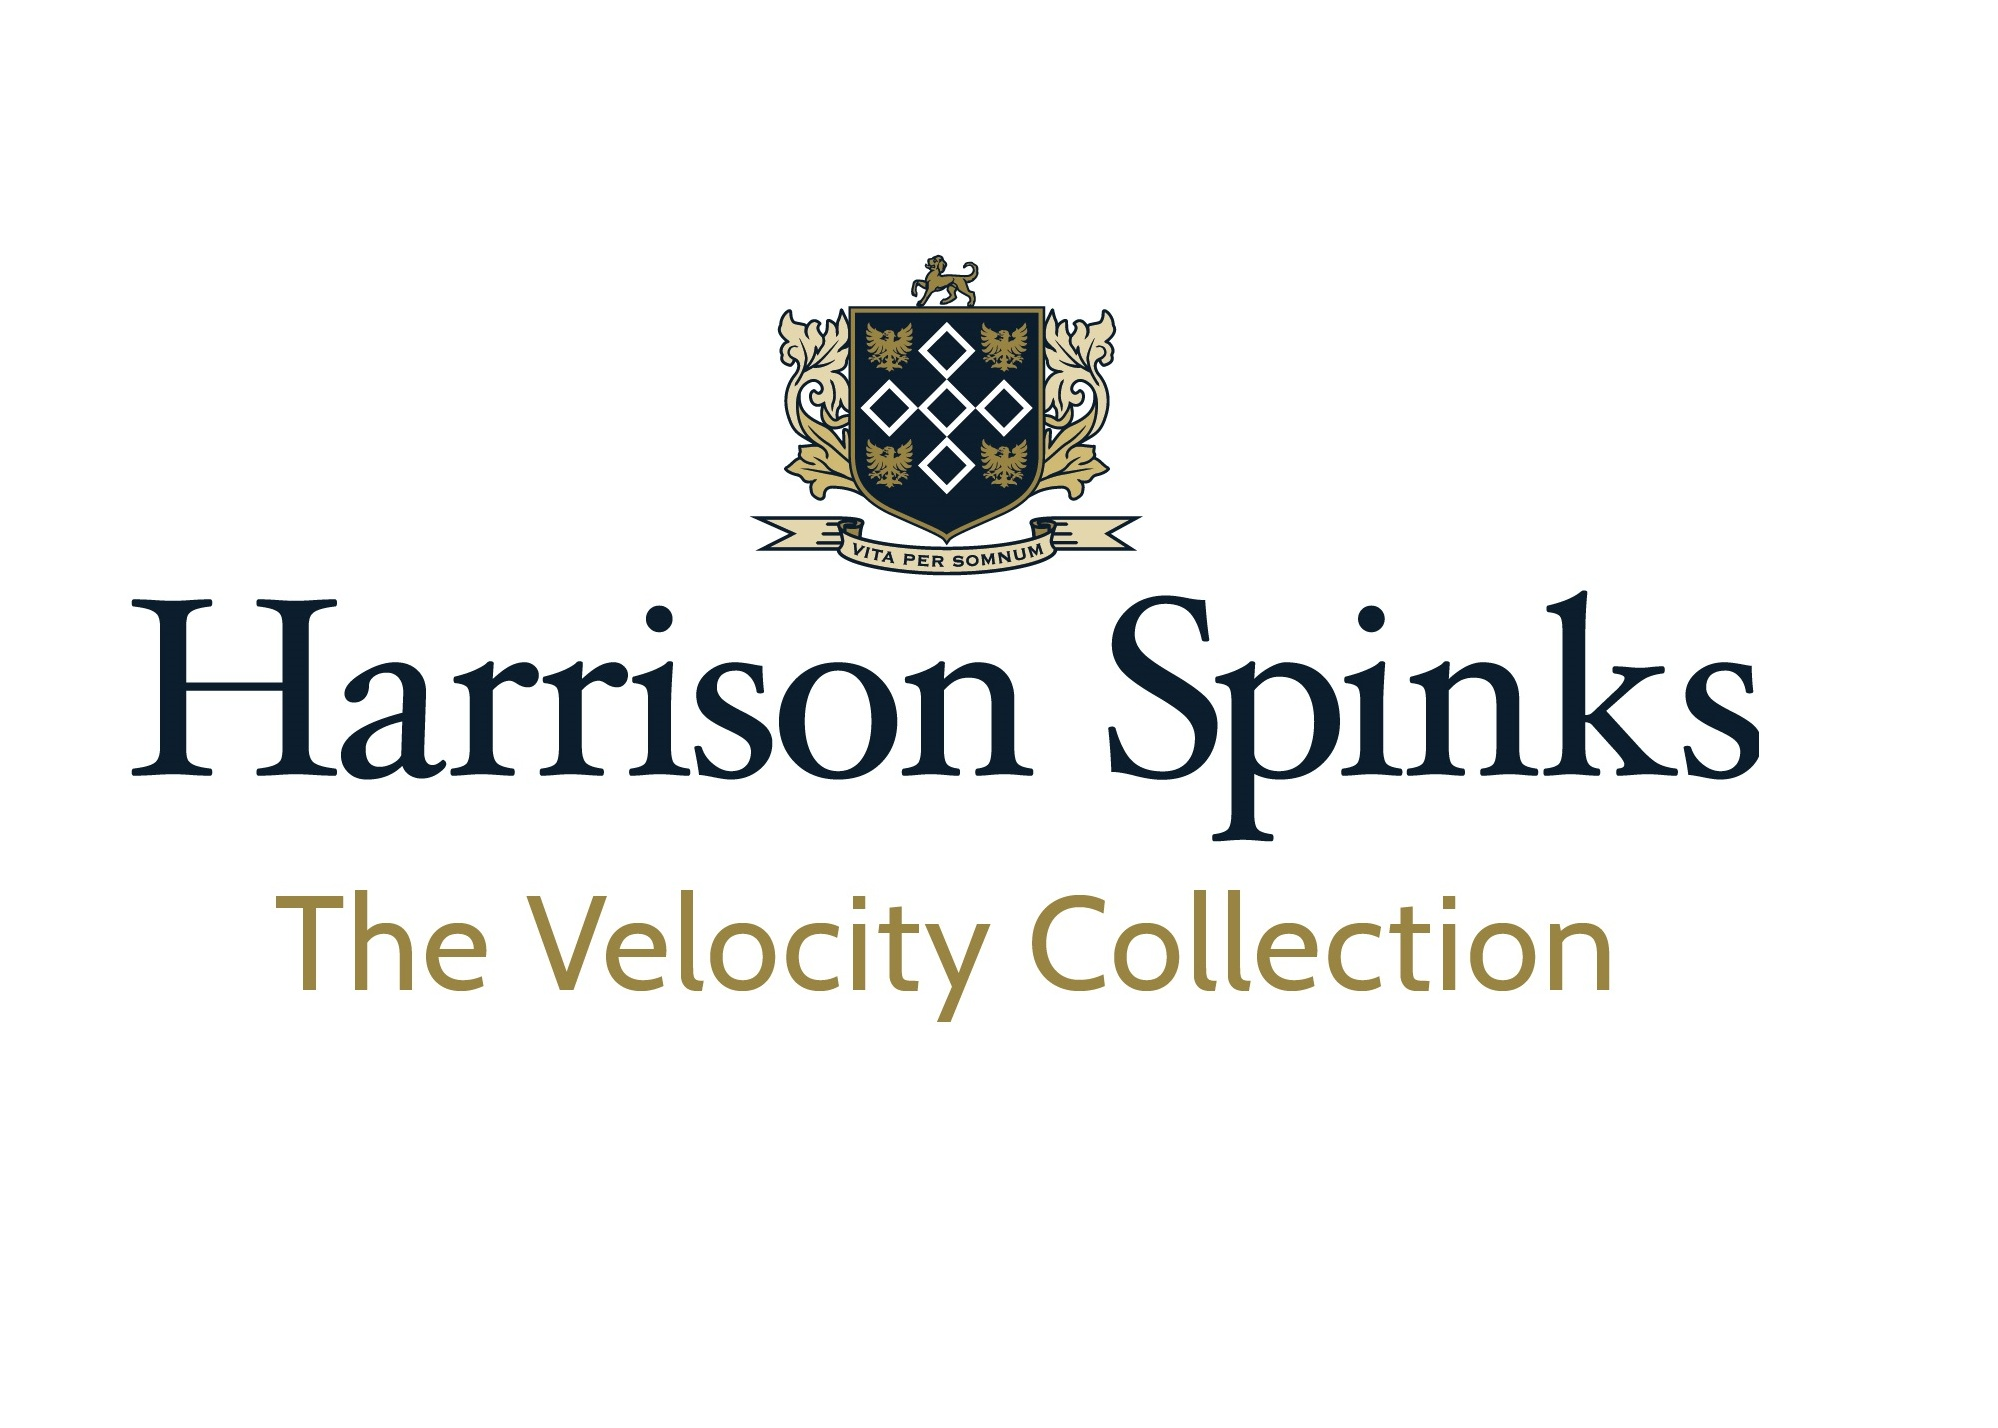 Harrison Beds Velocity Collection